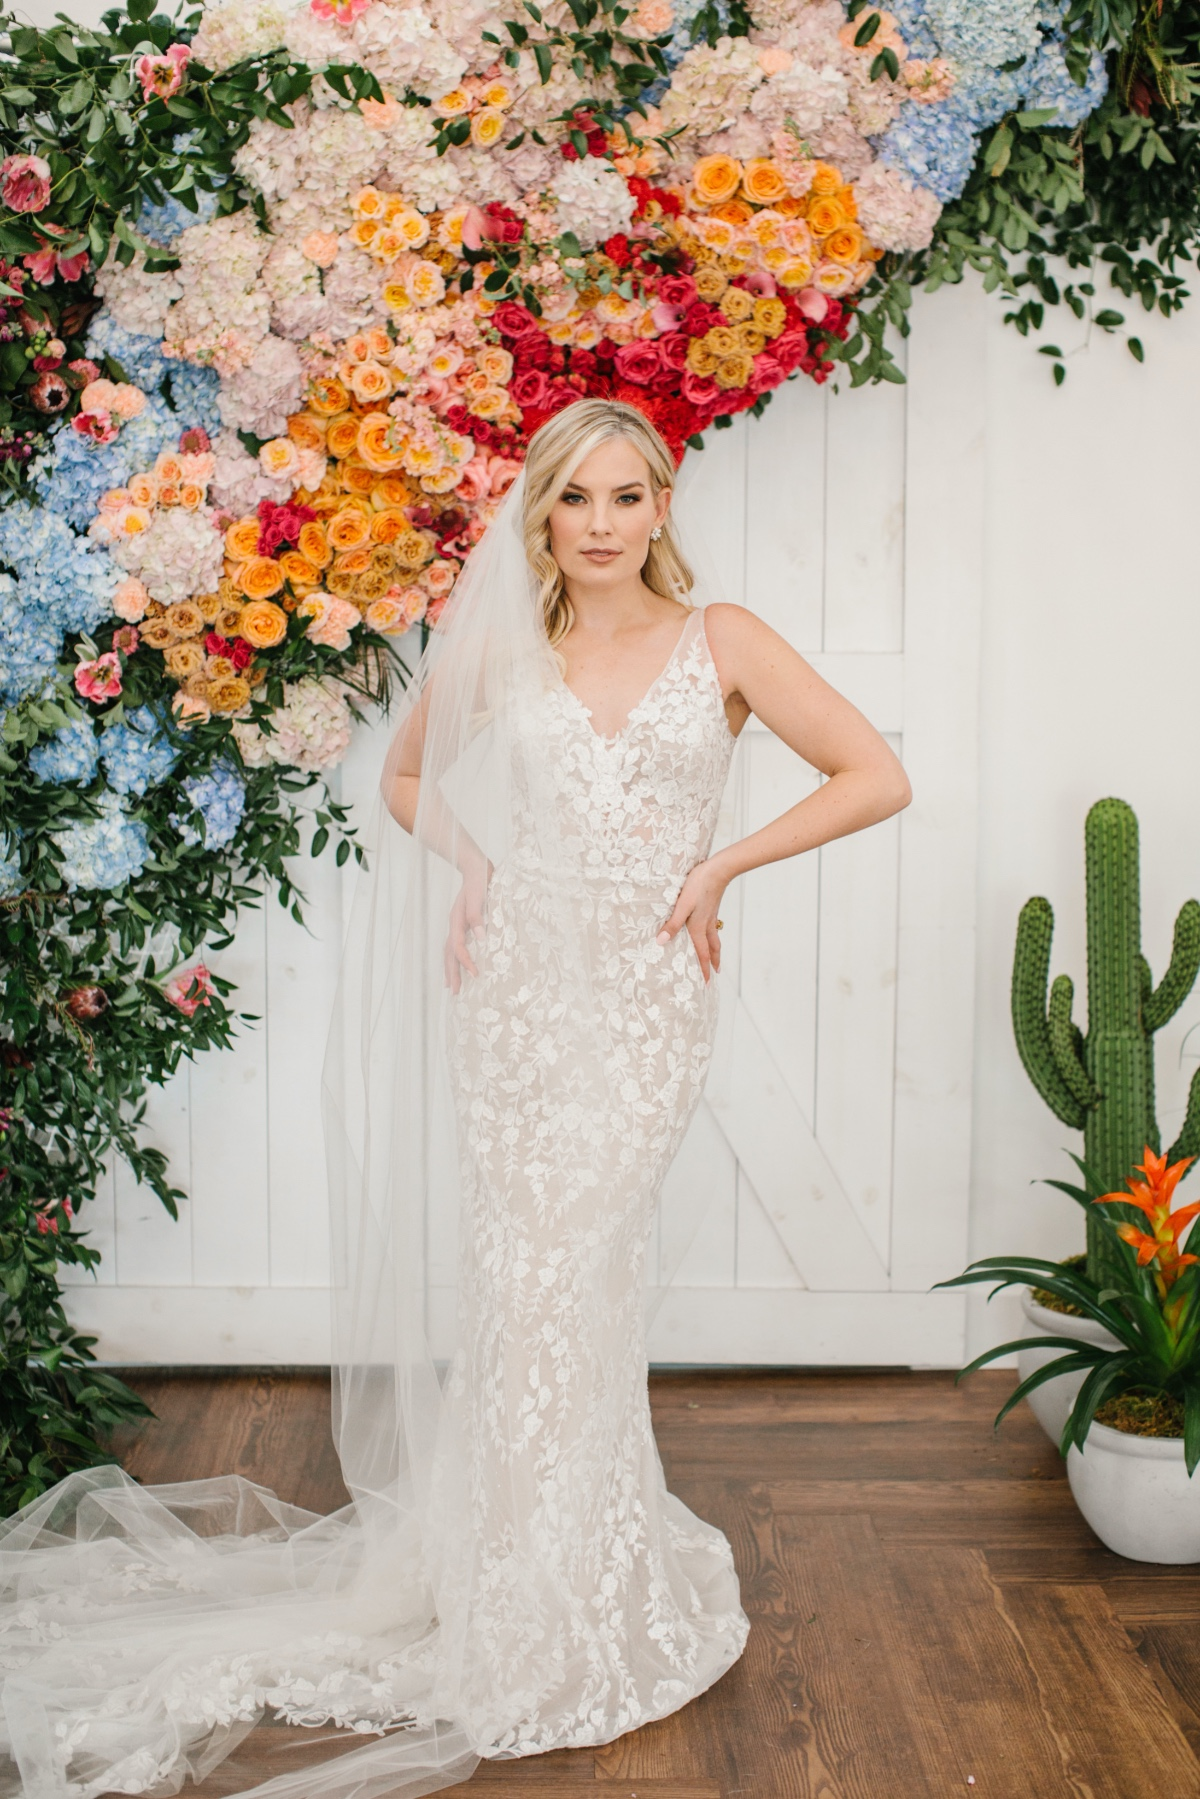 Lace wedding gown in front rainbow floral backdrop